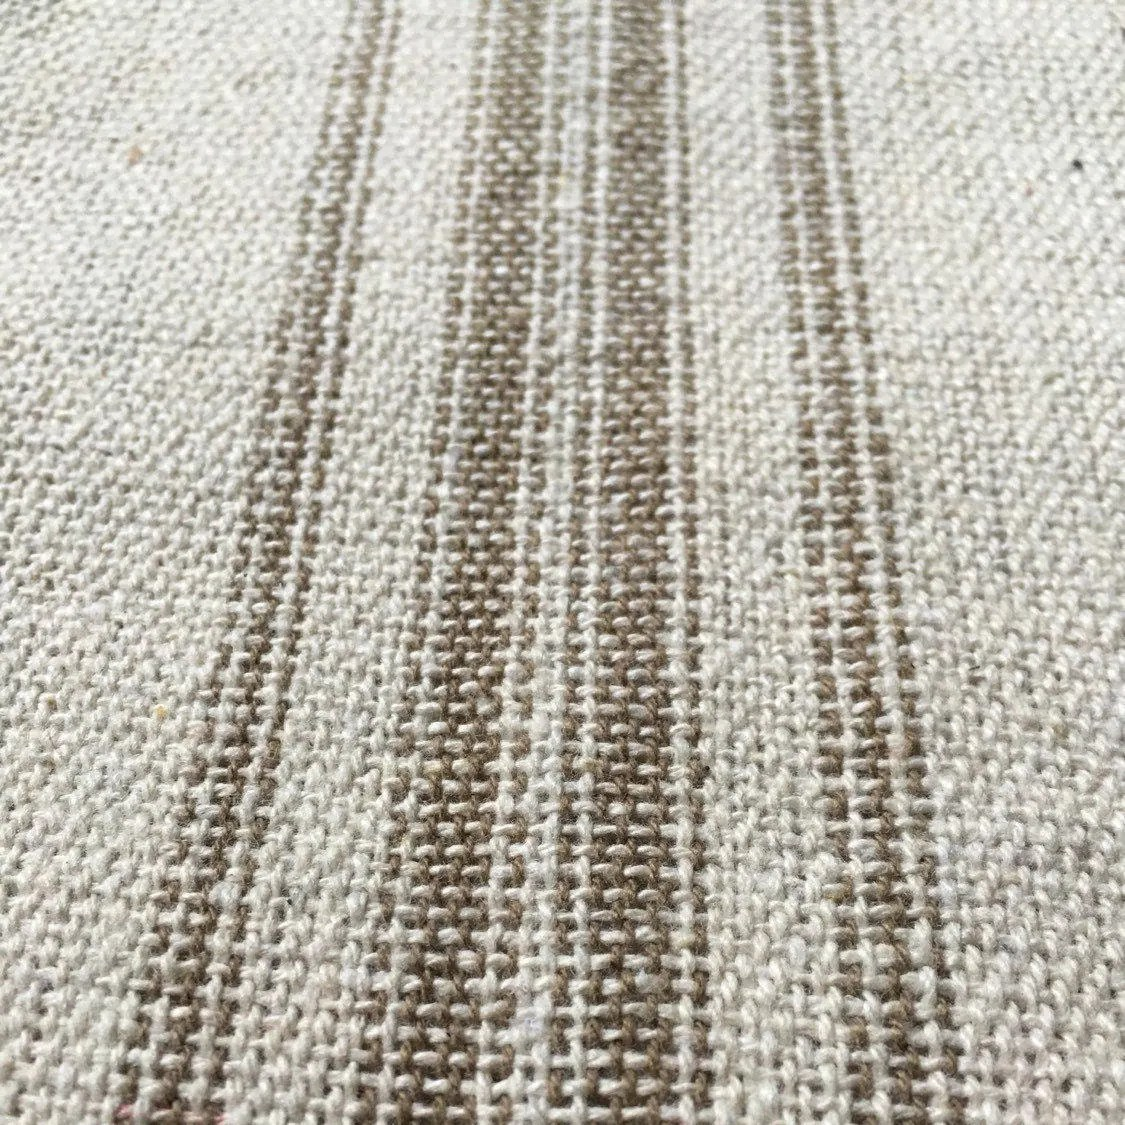 Flour Sack Fabric By The Yard Grain Sack Fabric Sold By The Yard Tan Stripes Vintage